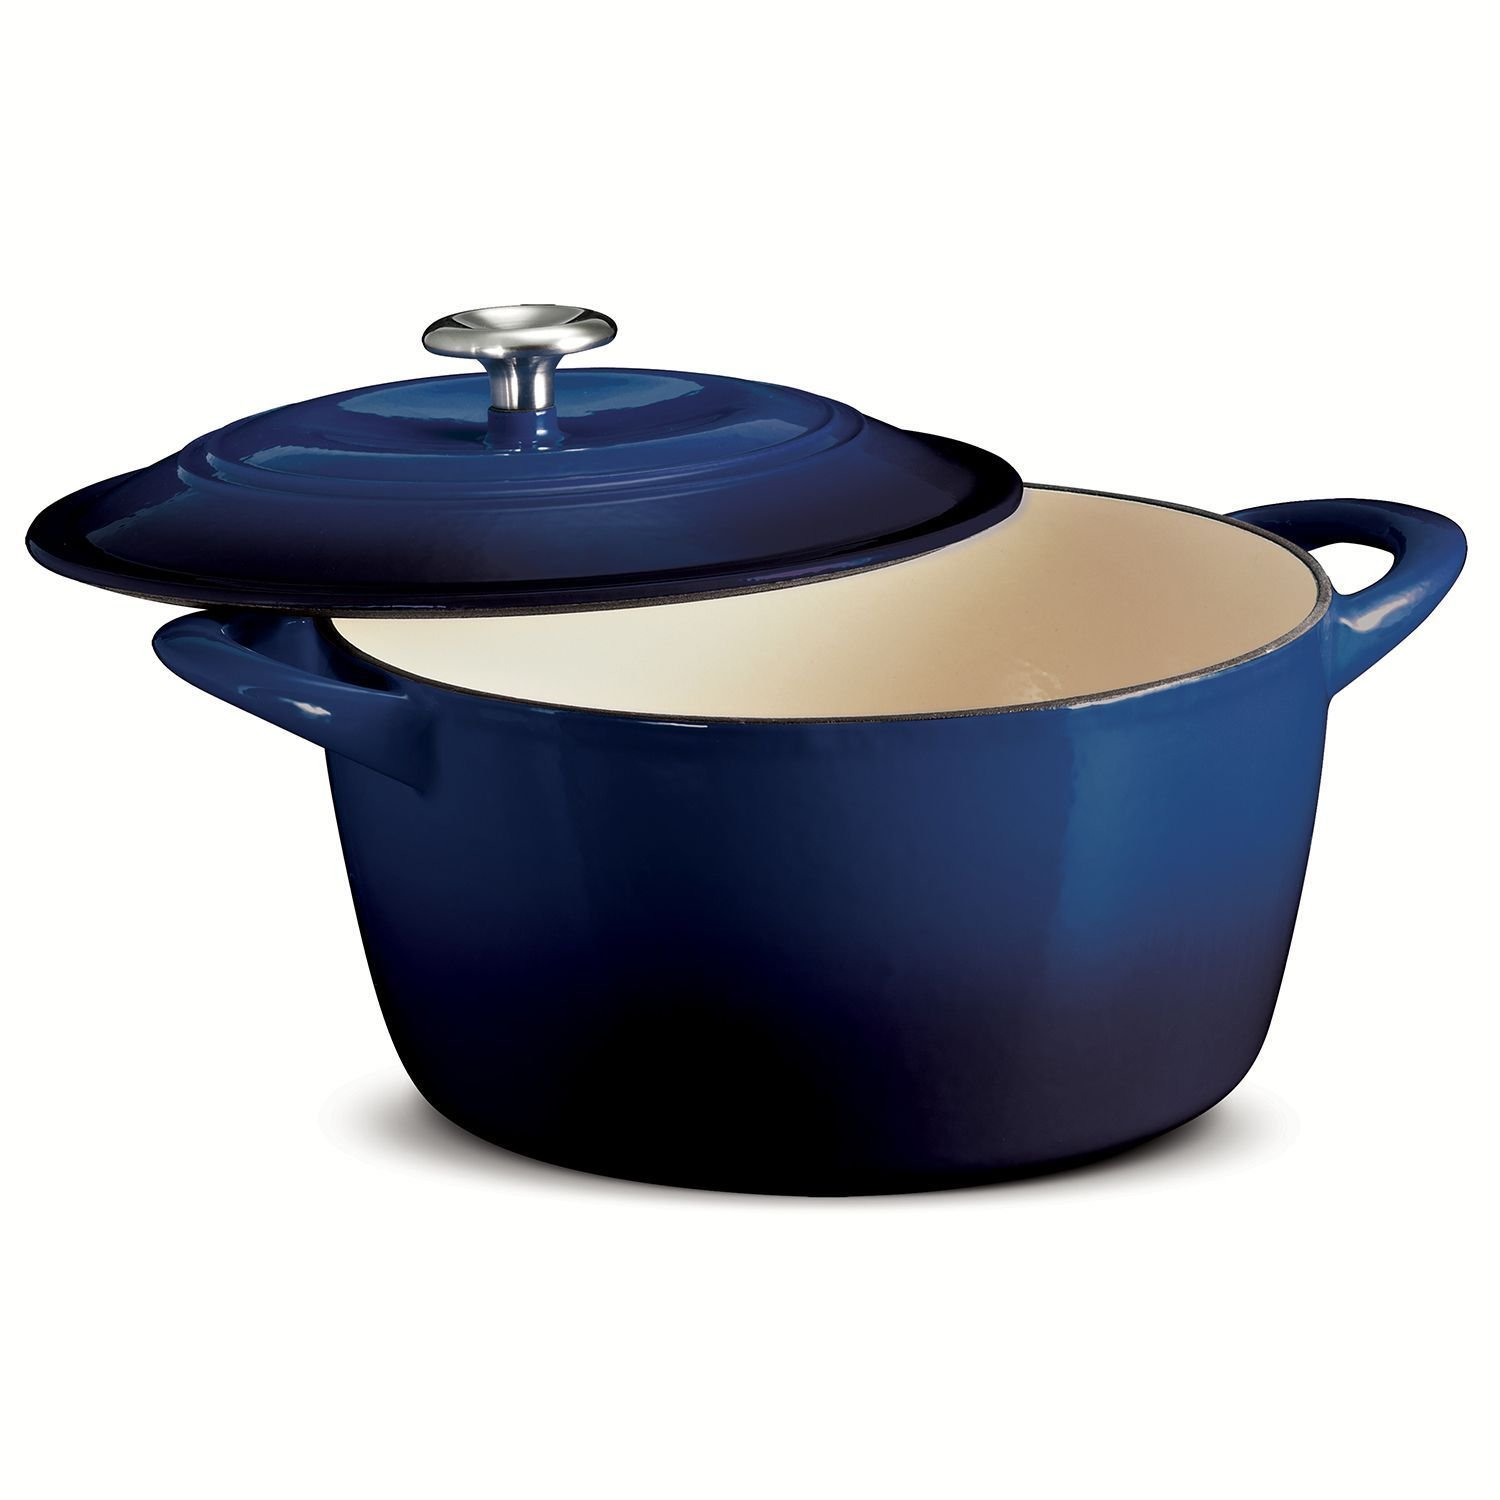 Tramontina 6.5q Cast Iron Dutch Oven Casserole by Tramontina